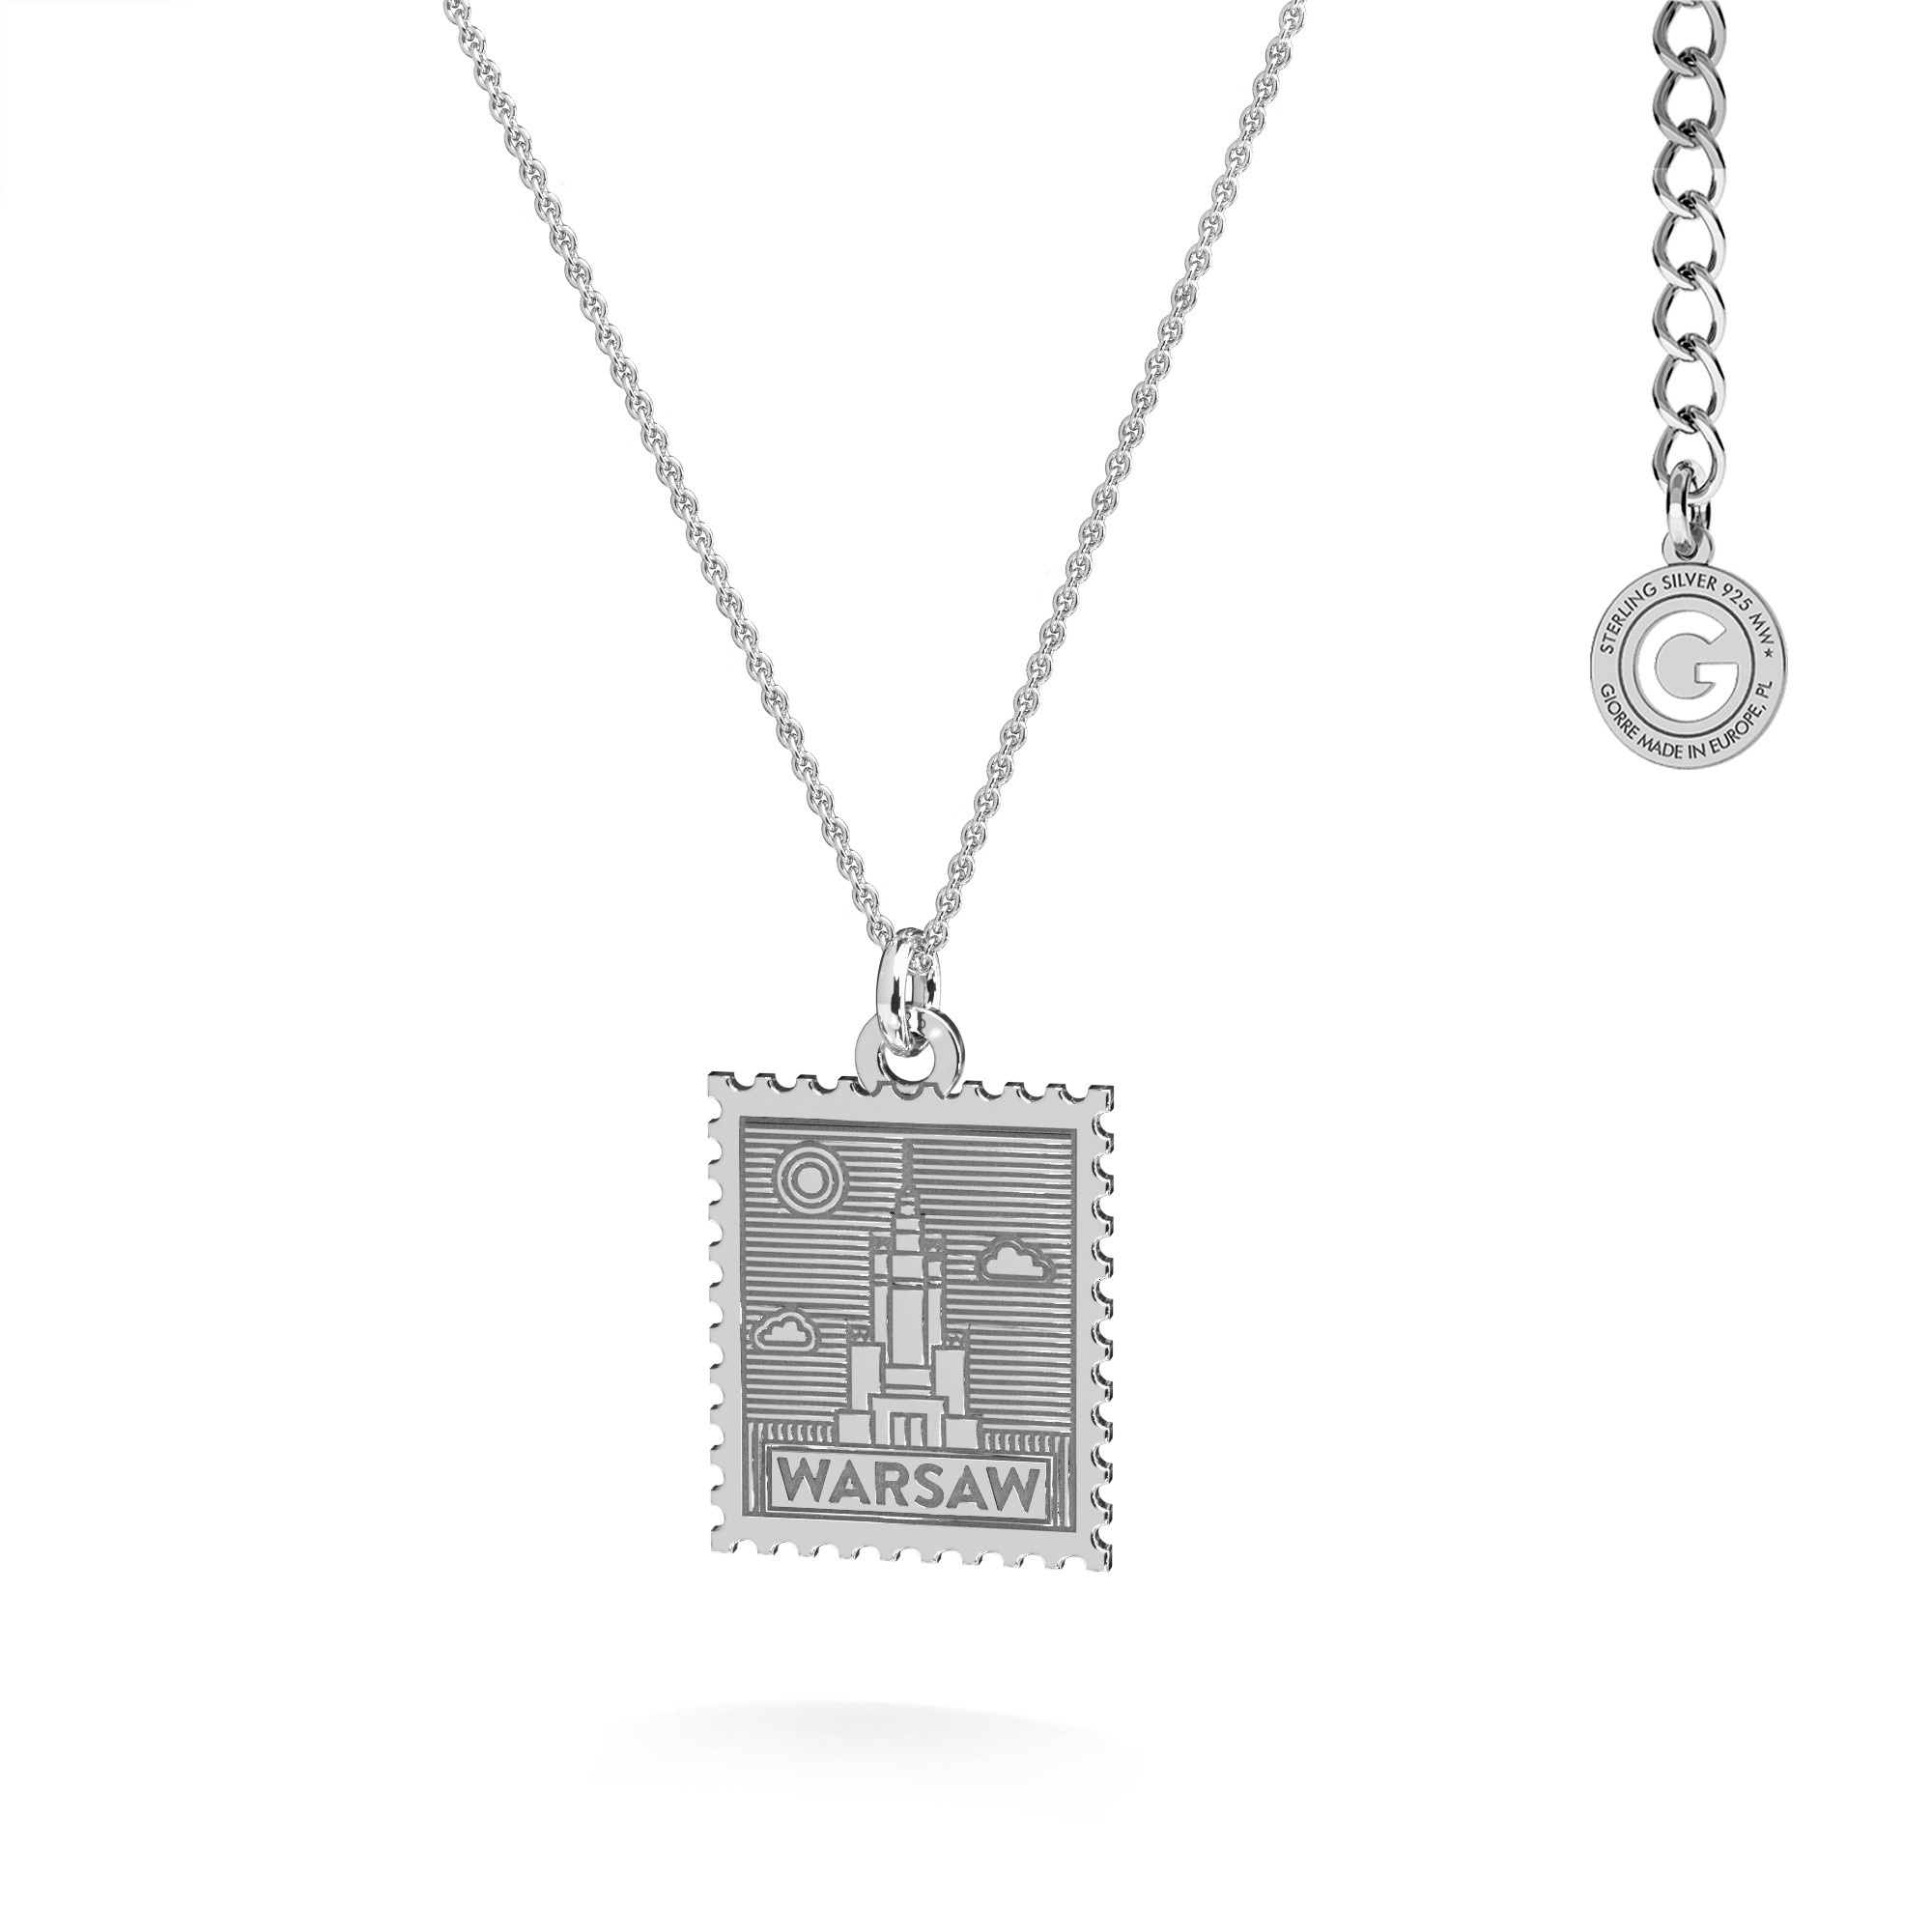 Letter necklace sterling silver 925